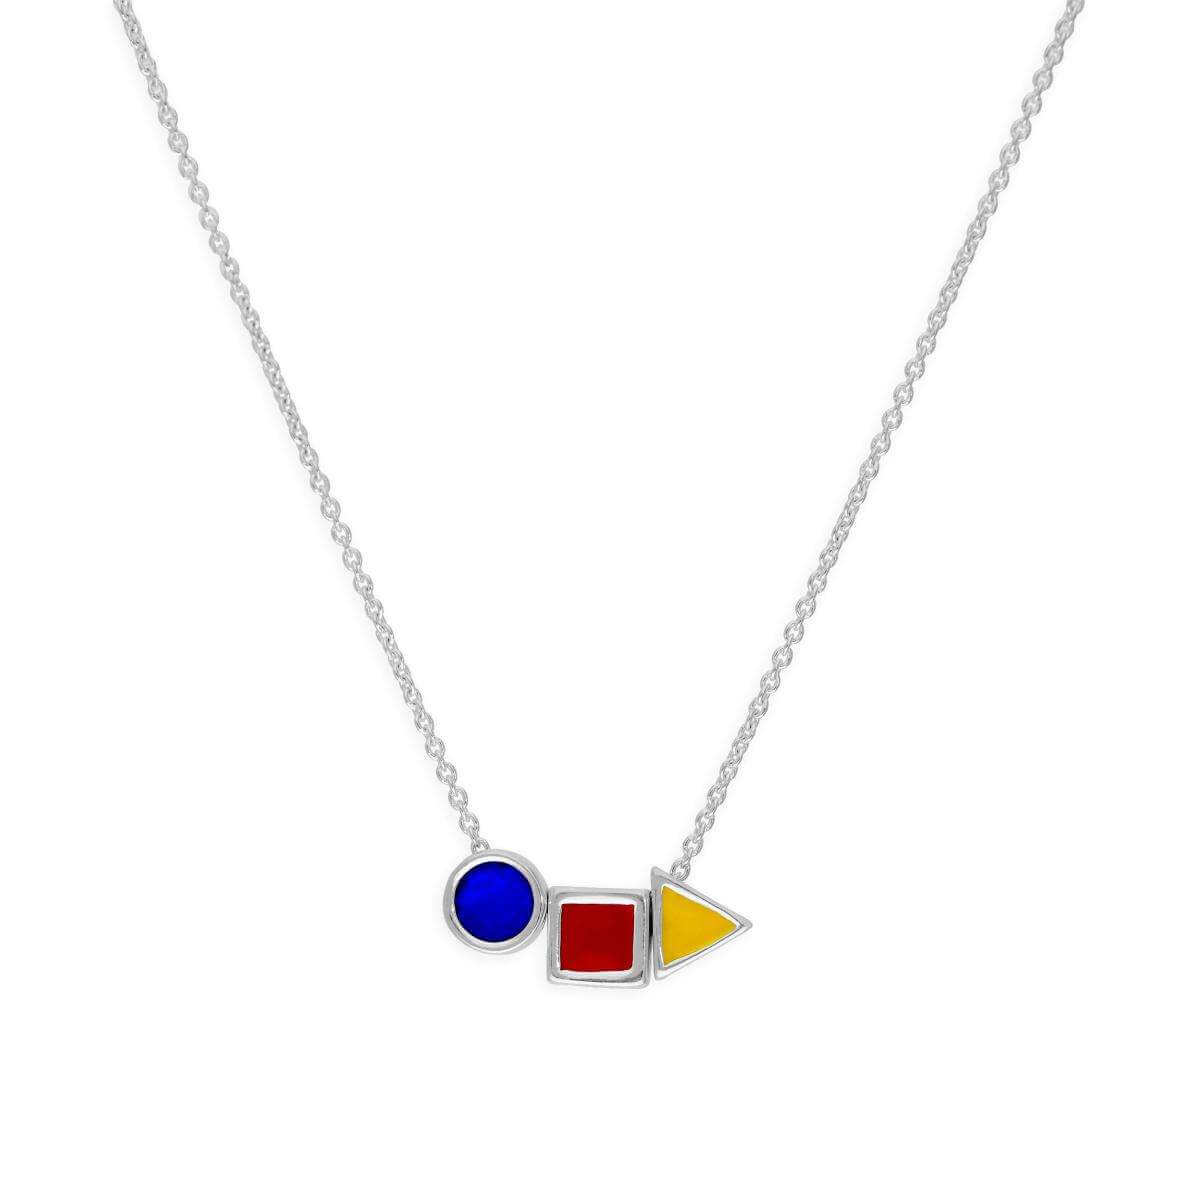 Sterling Silver & Coloured Enamel 18 Inch Bauhaus Design Necklace